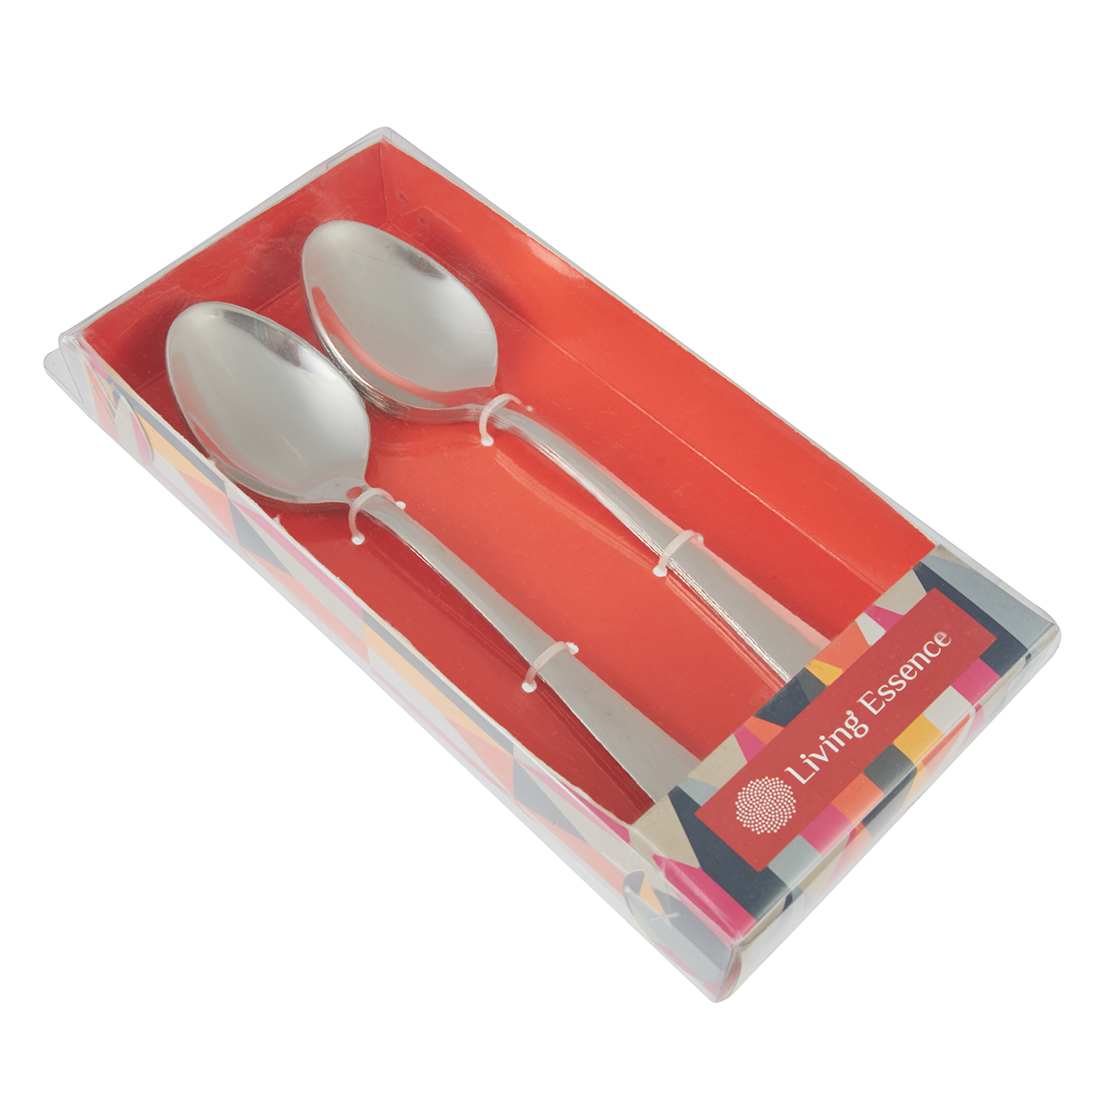 Glossy Dessert Spoon Set Of 6 Stainless steel Cutlery Sets in Steel Colour by Living Essence